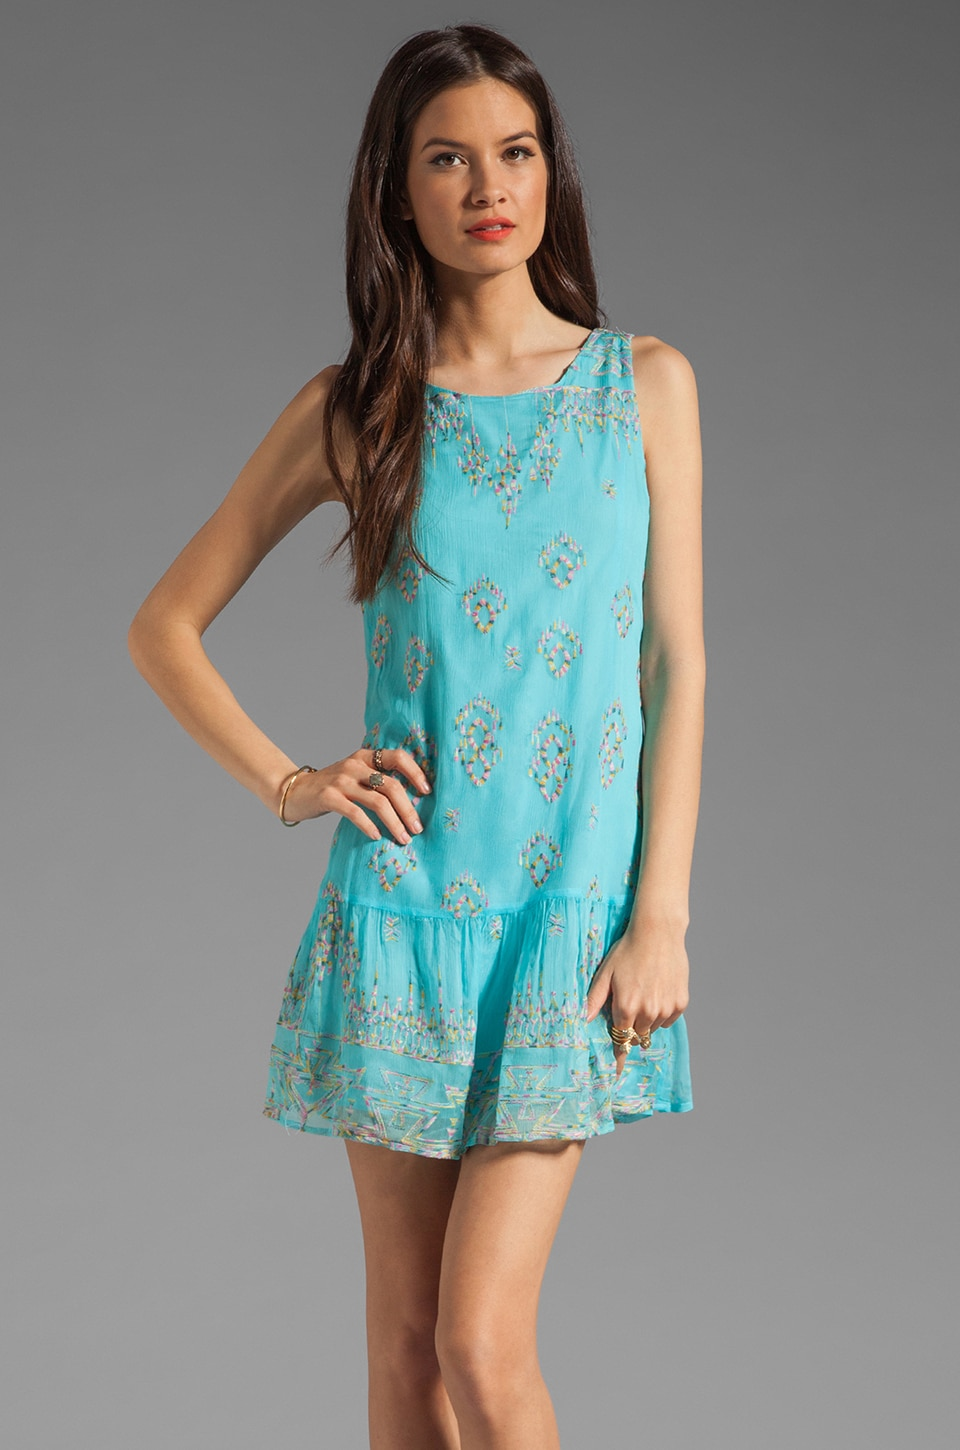 Twelfth Street By Cynthia Vincent Bursa Sleeveless Shift Dress in Turquoise